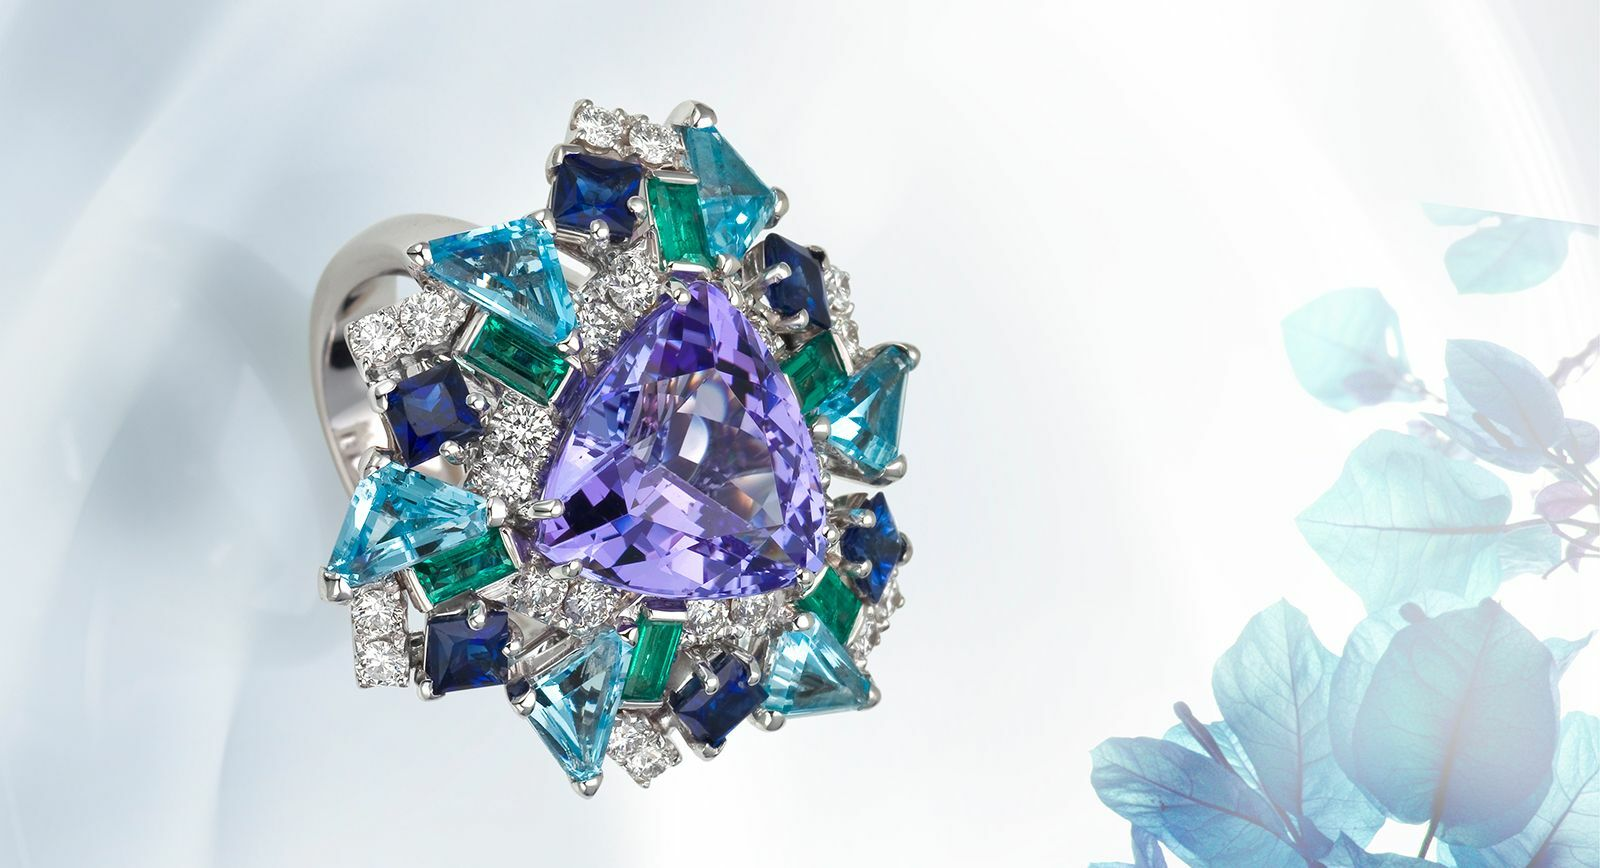 Jewellery From Carlo Barberis Allows to See the World in Bright Colours